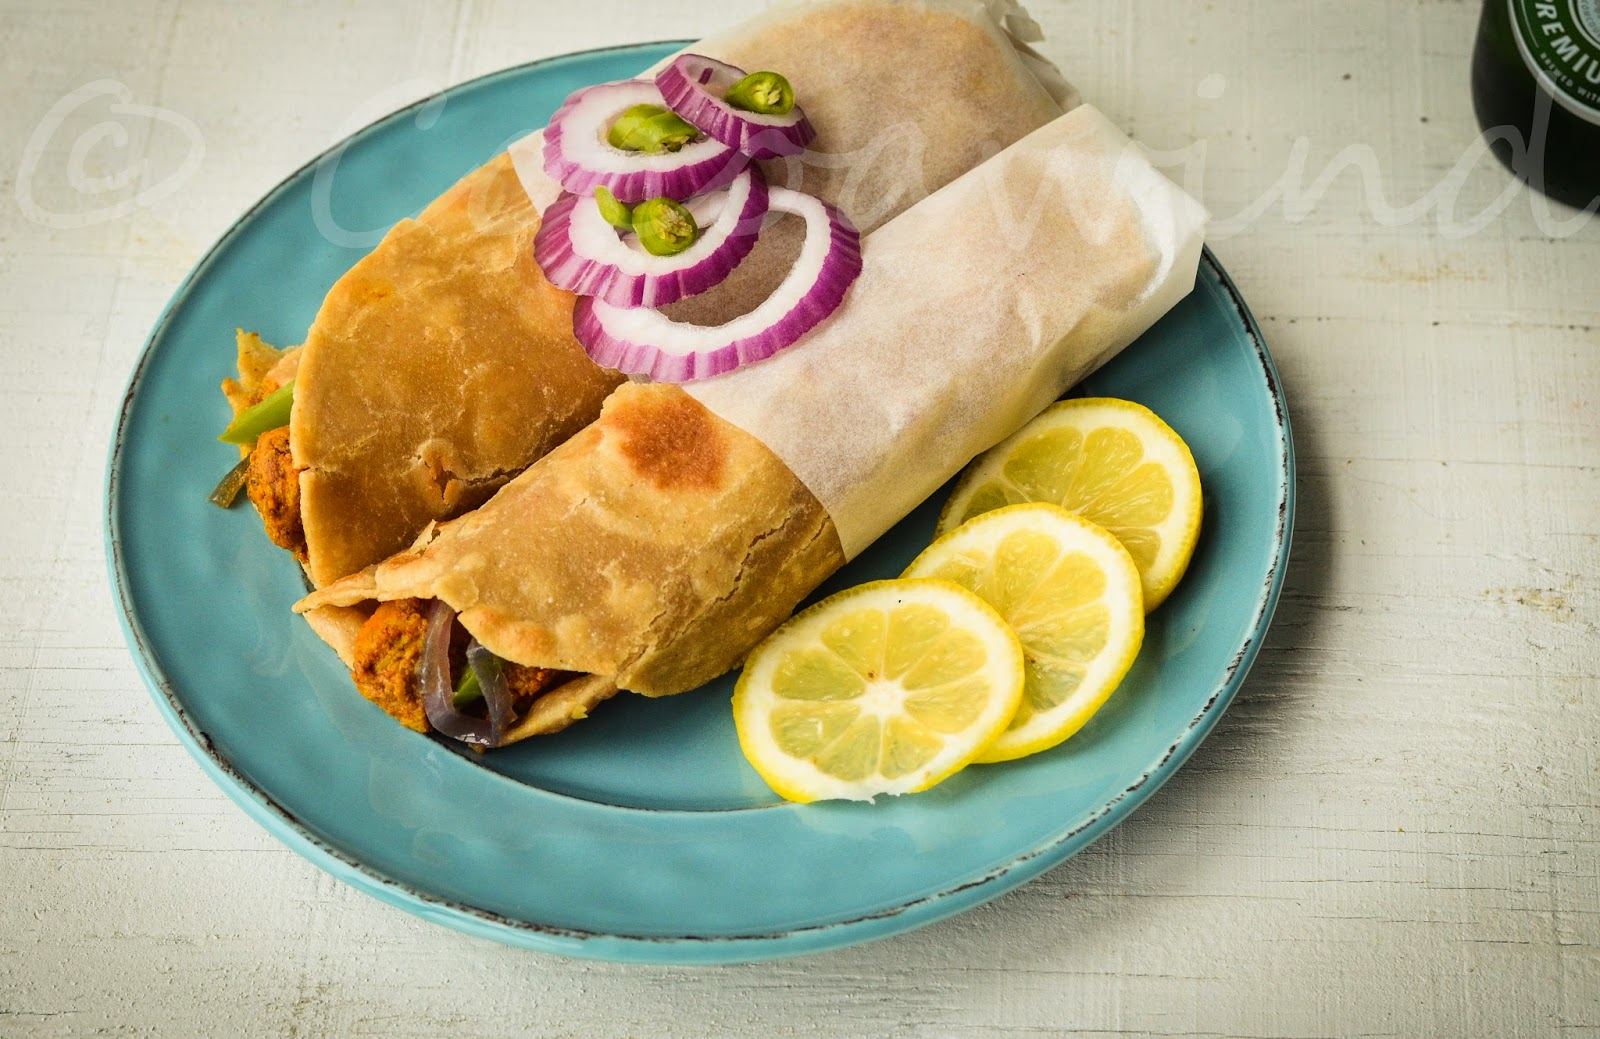 Pritha's Chicken Roll